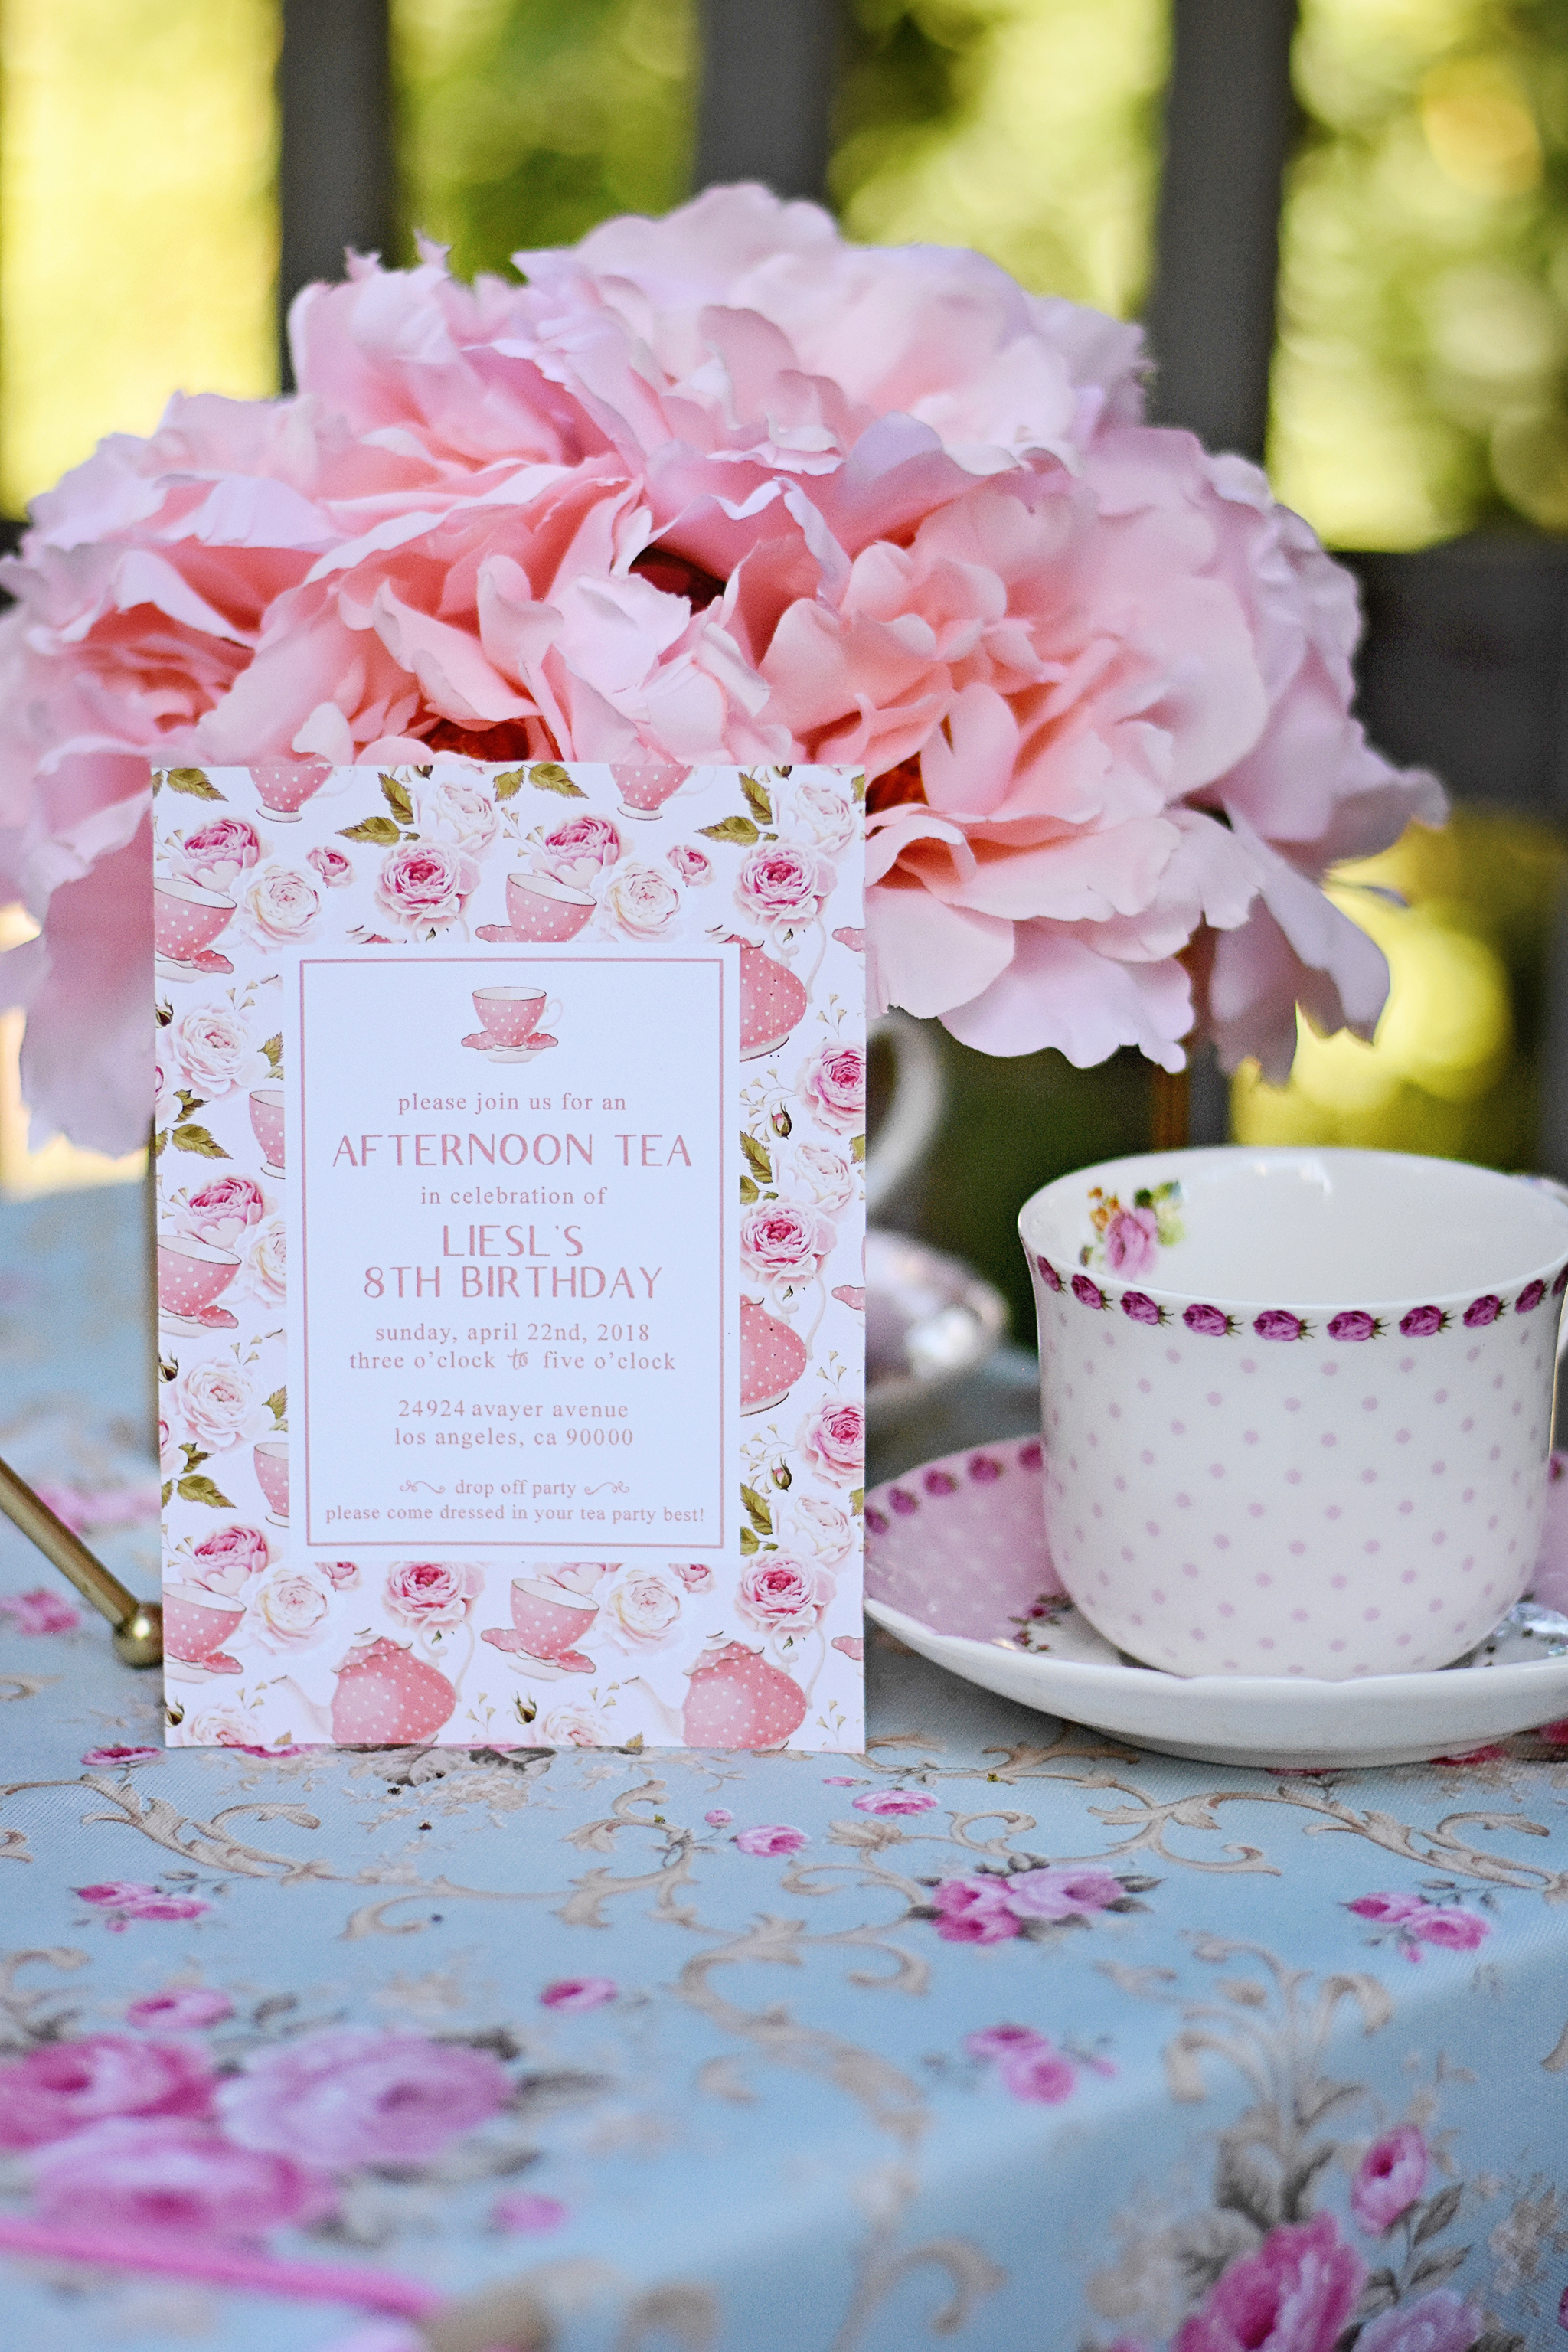 Tea Party invitations let your guests know the dress code!